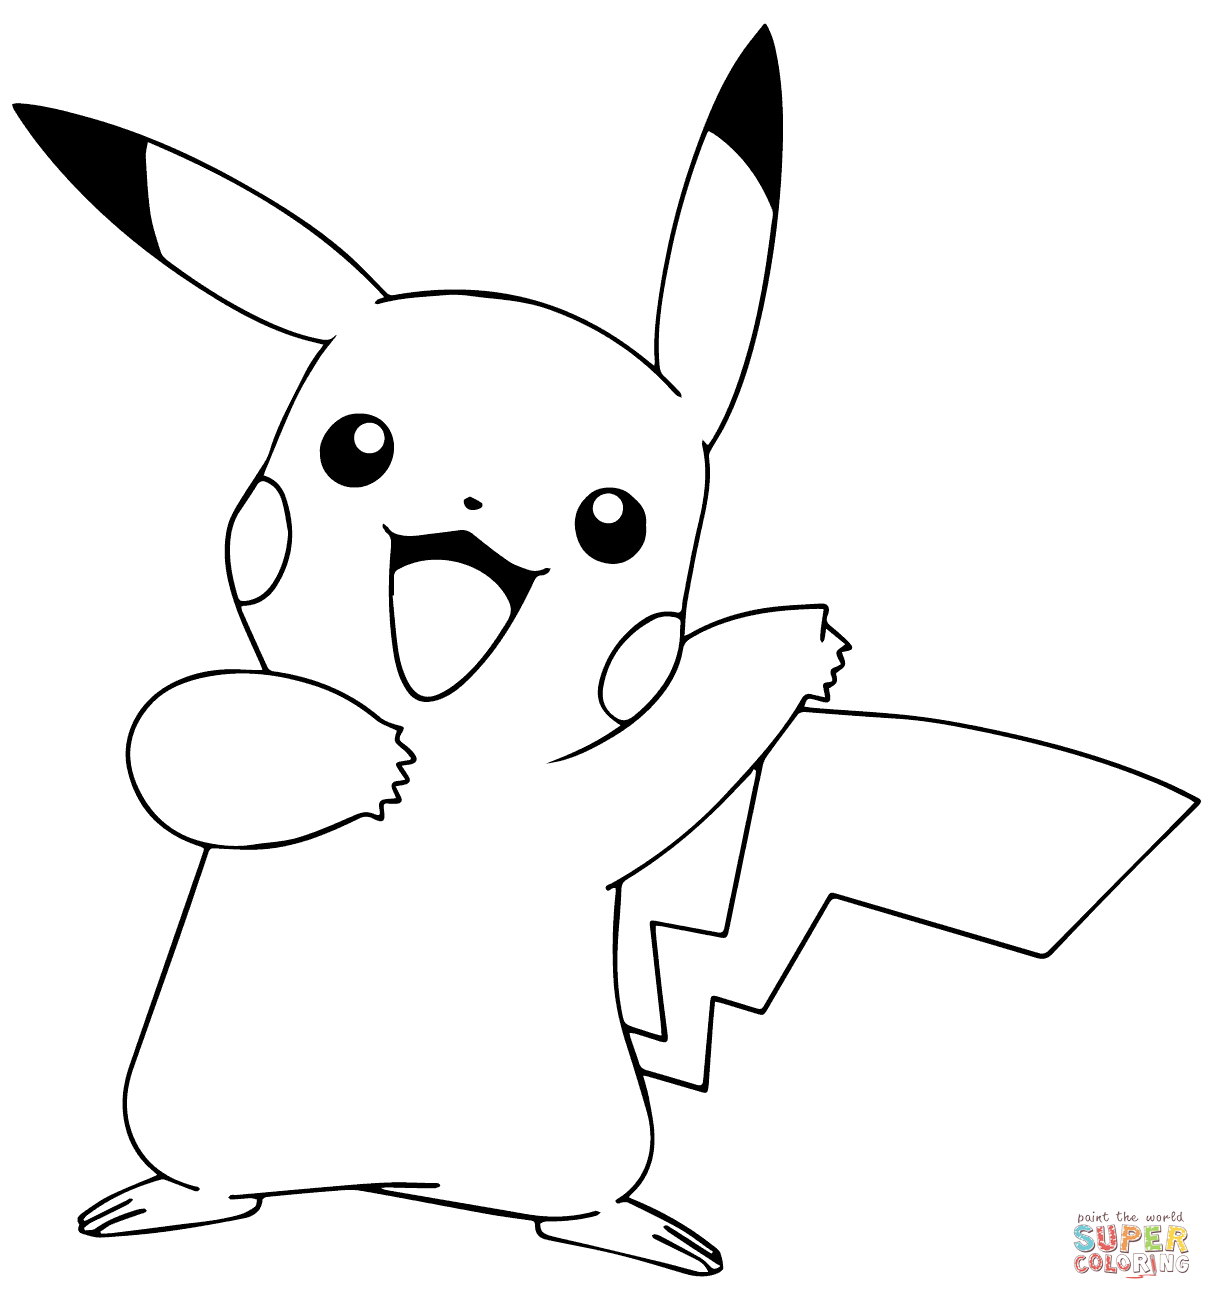 Pikachu from Pokémon GO coloring page Free Printable